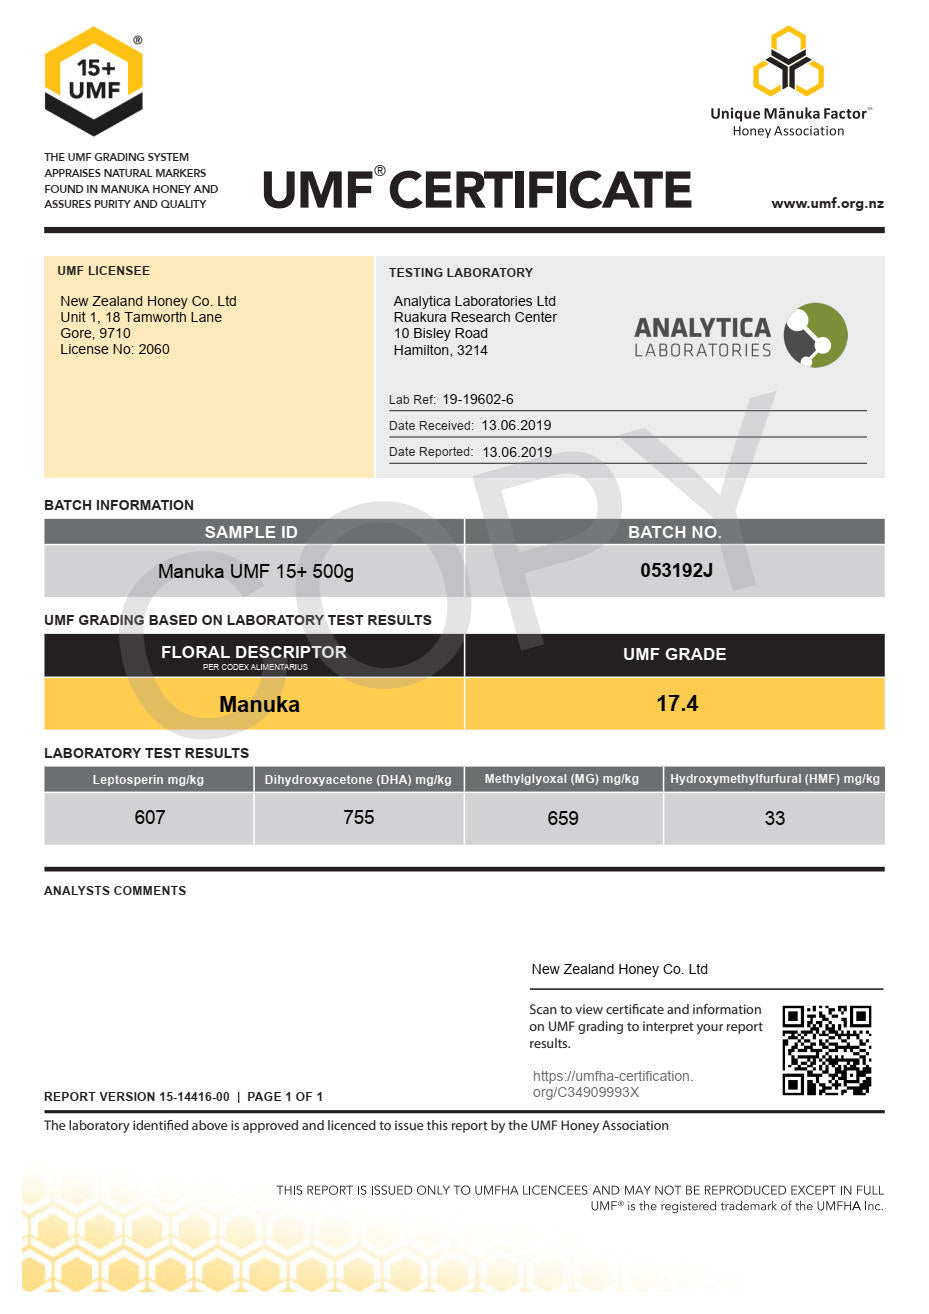 Manuka Honey UMF Certificate for LOT 053192J from New Zealand Honey Co.